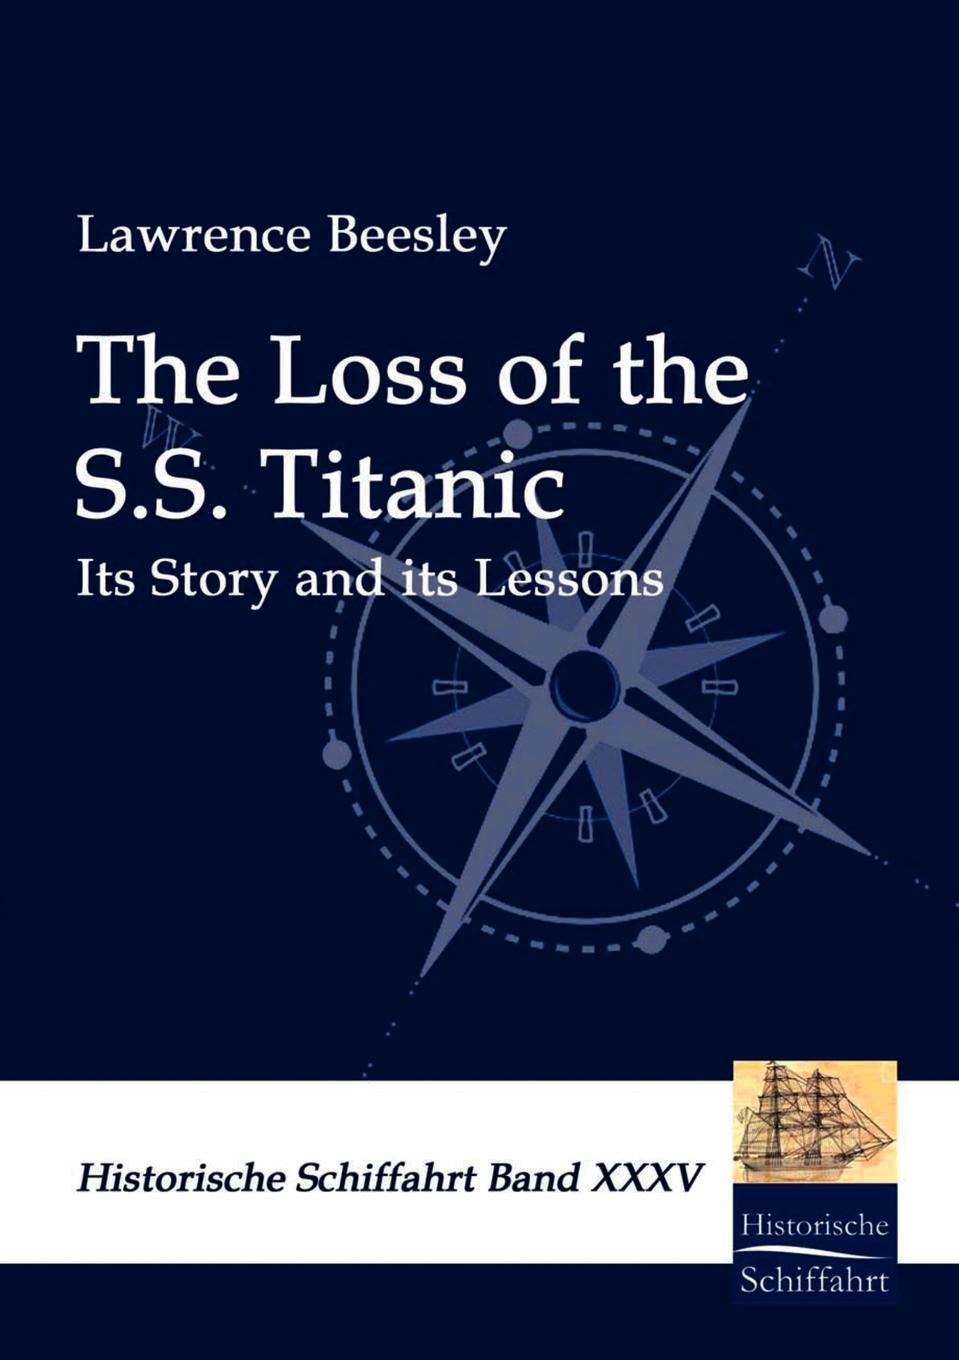 Lawrence Beesley The Loss of the S.S. Titanic titanic book